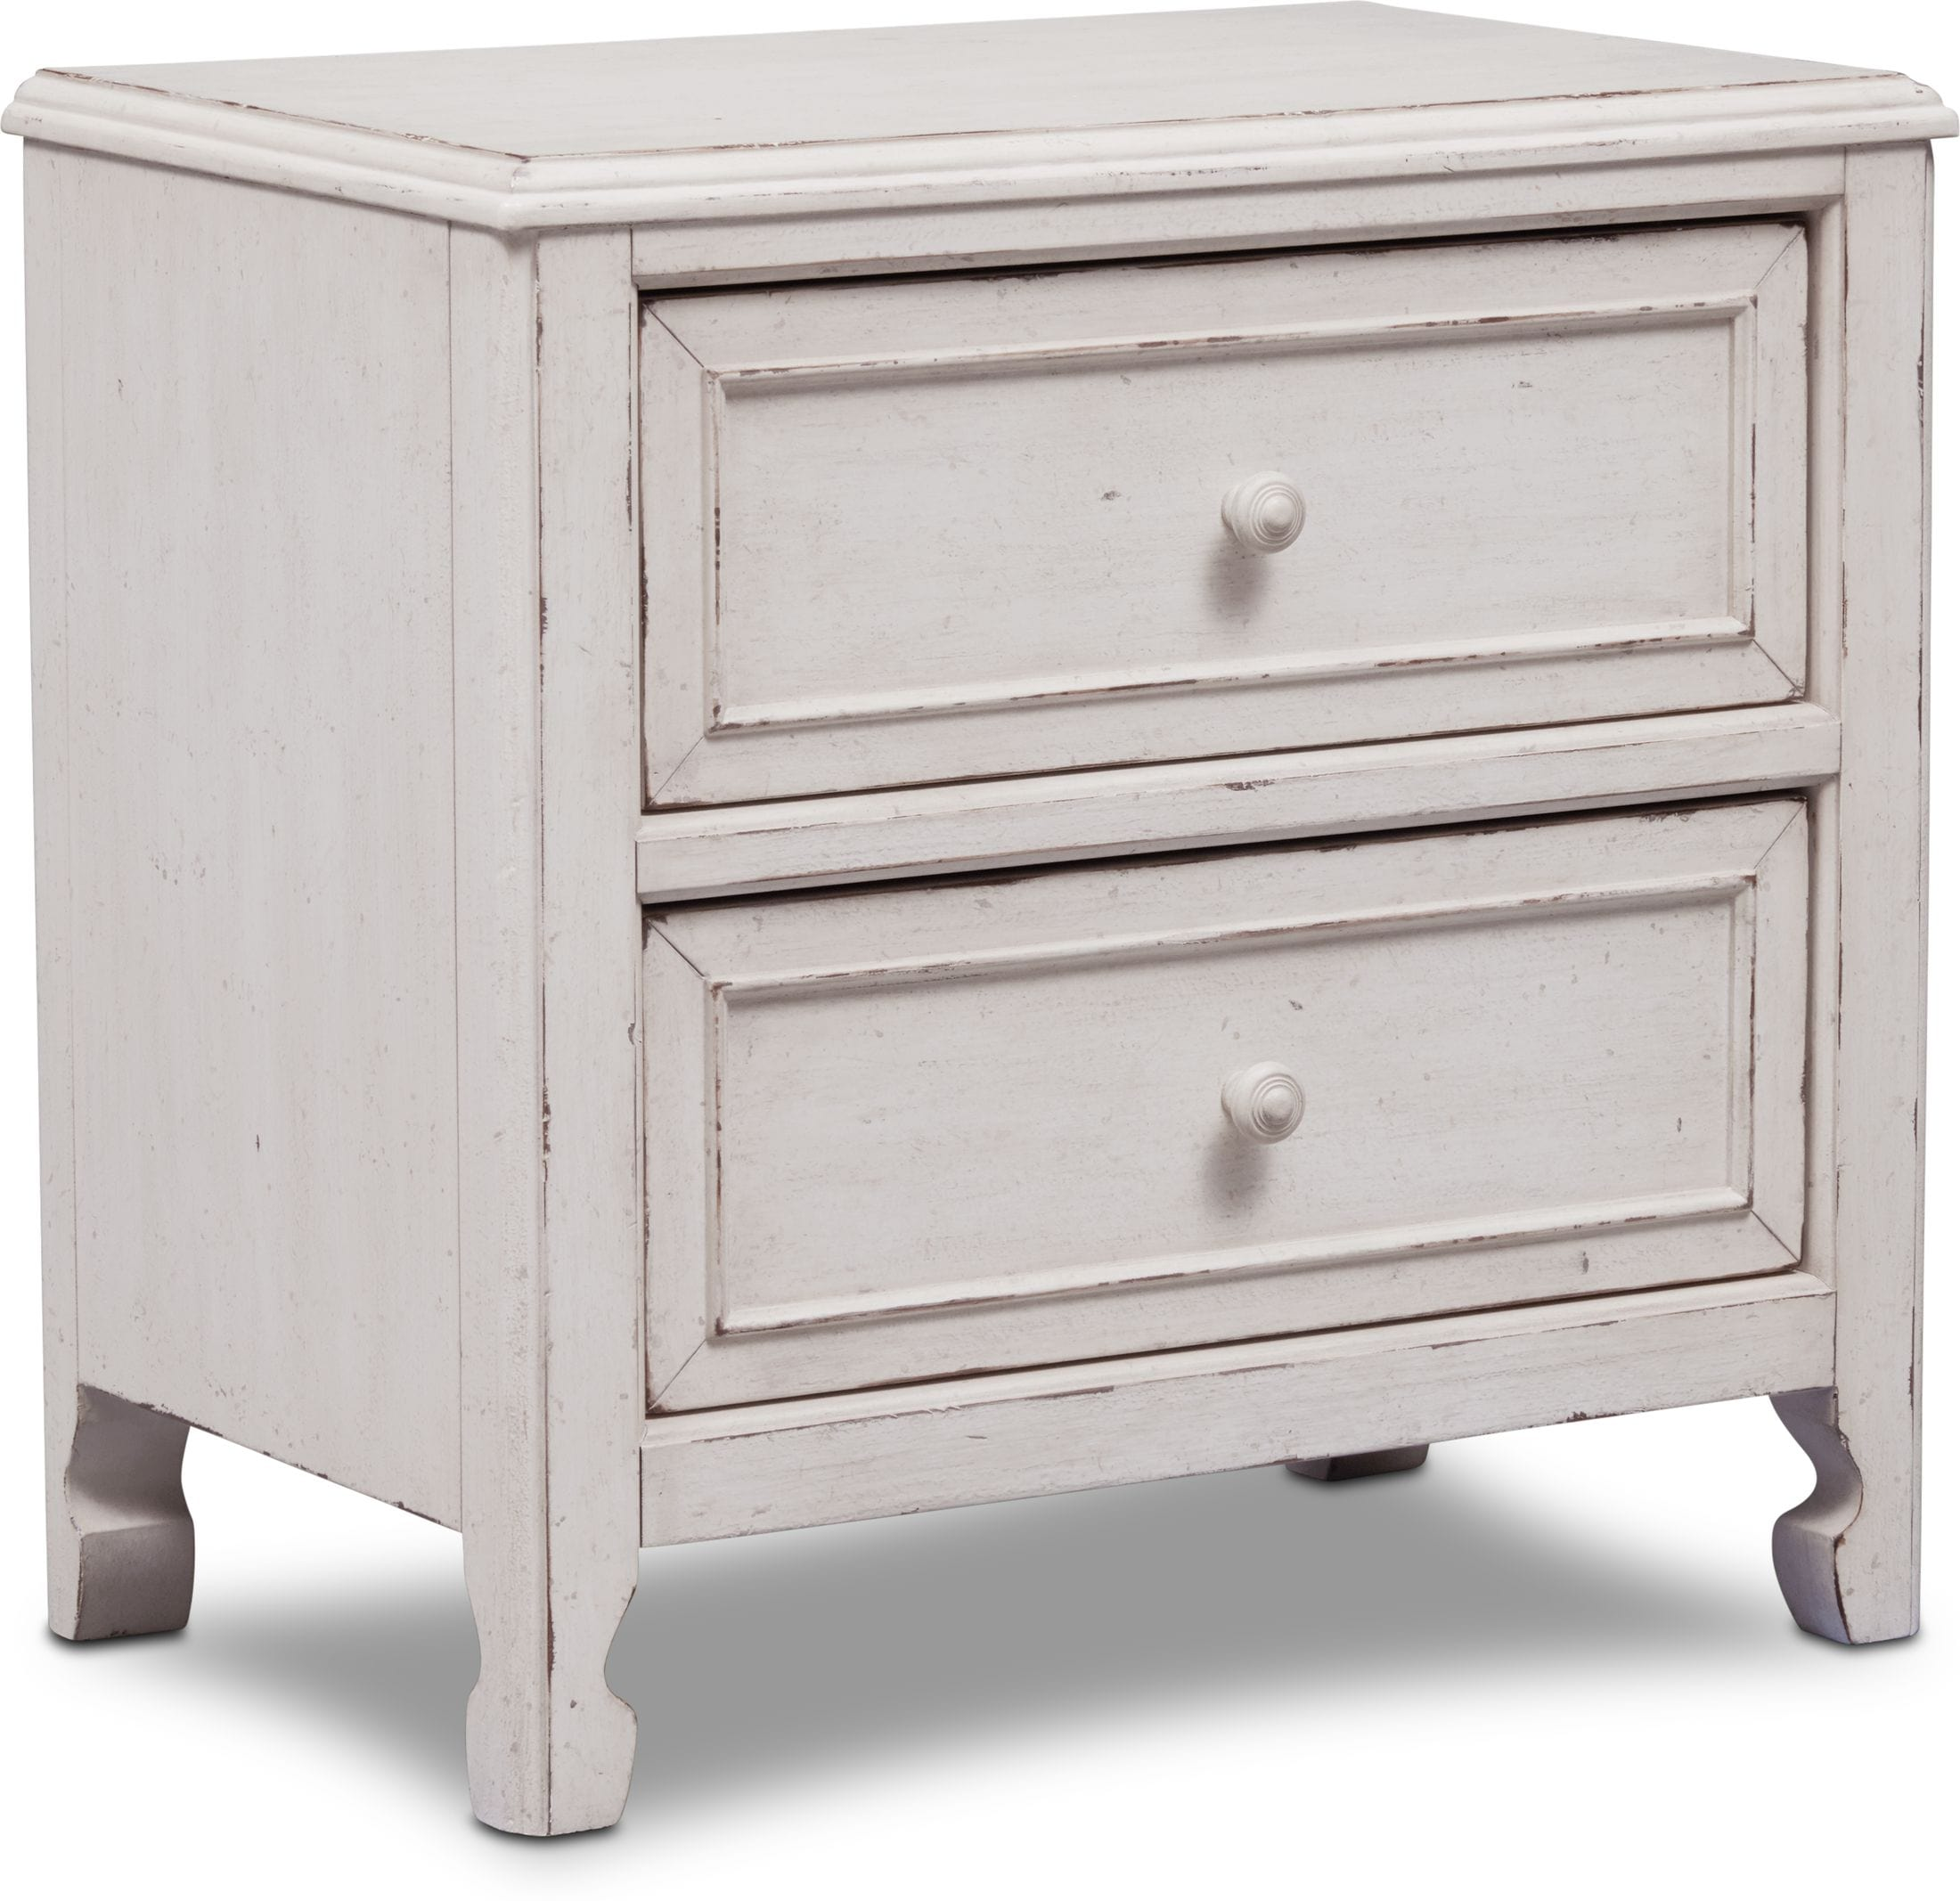 Bedroom Furniture - Florence 2-Drawer Nightstand